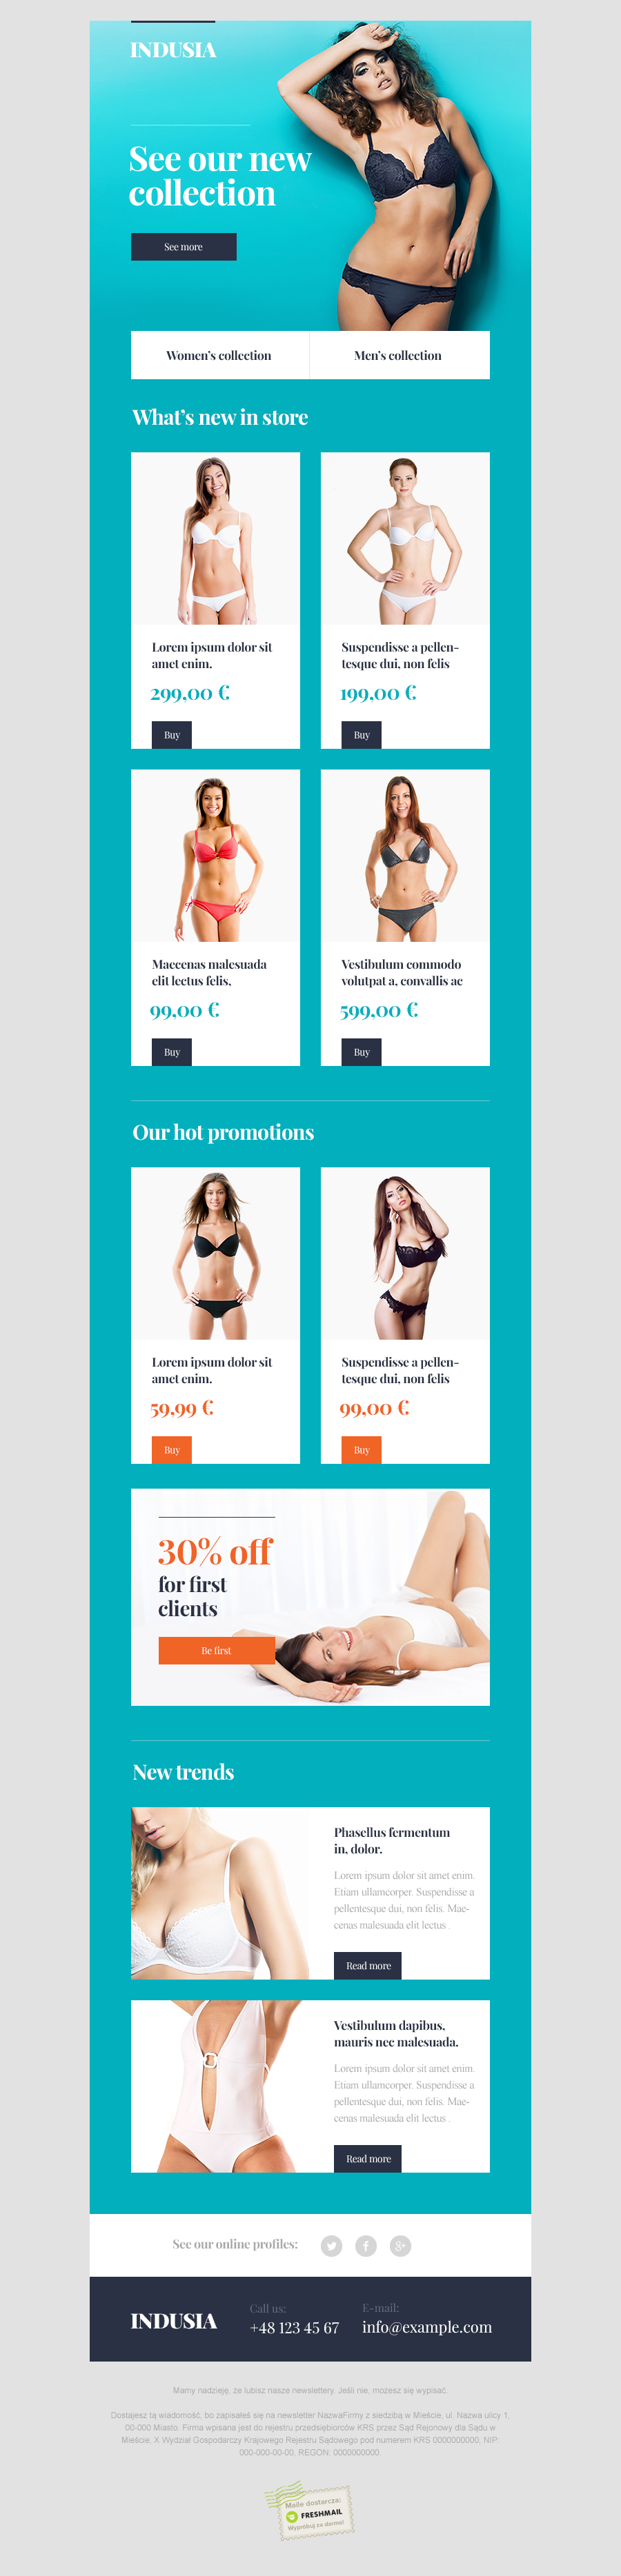 Indusia Newsletter Template